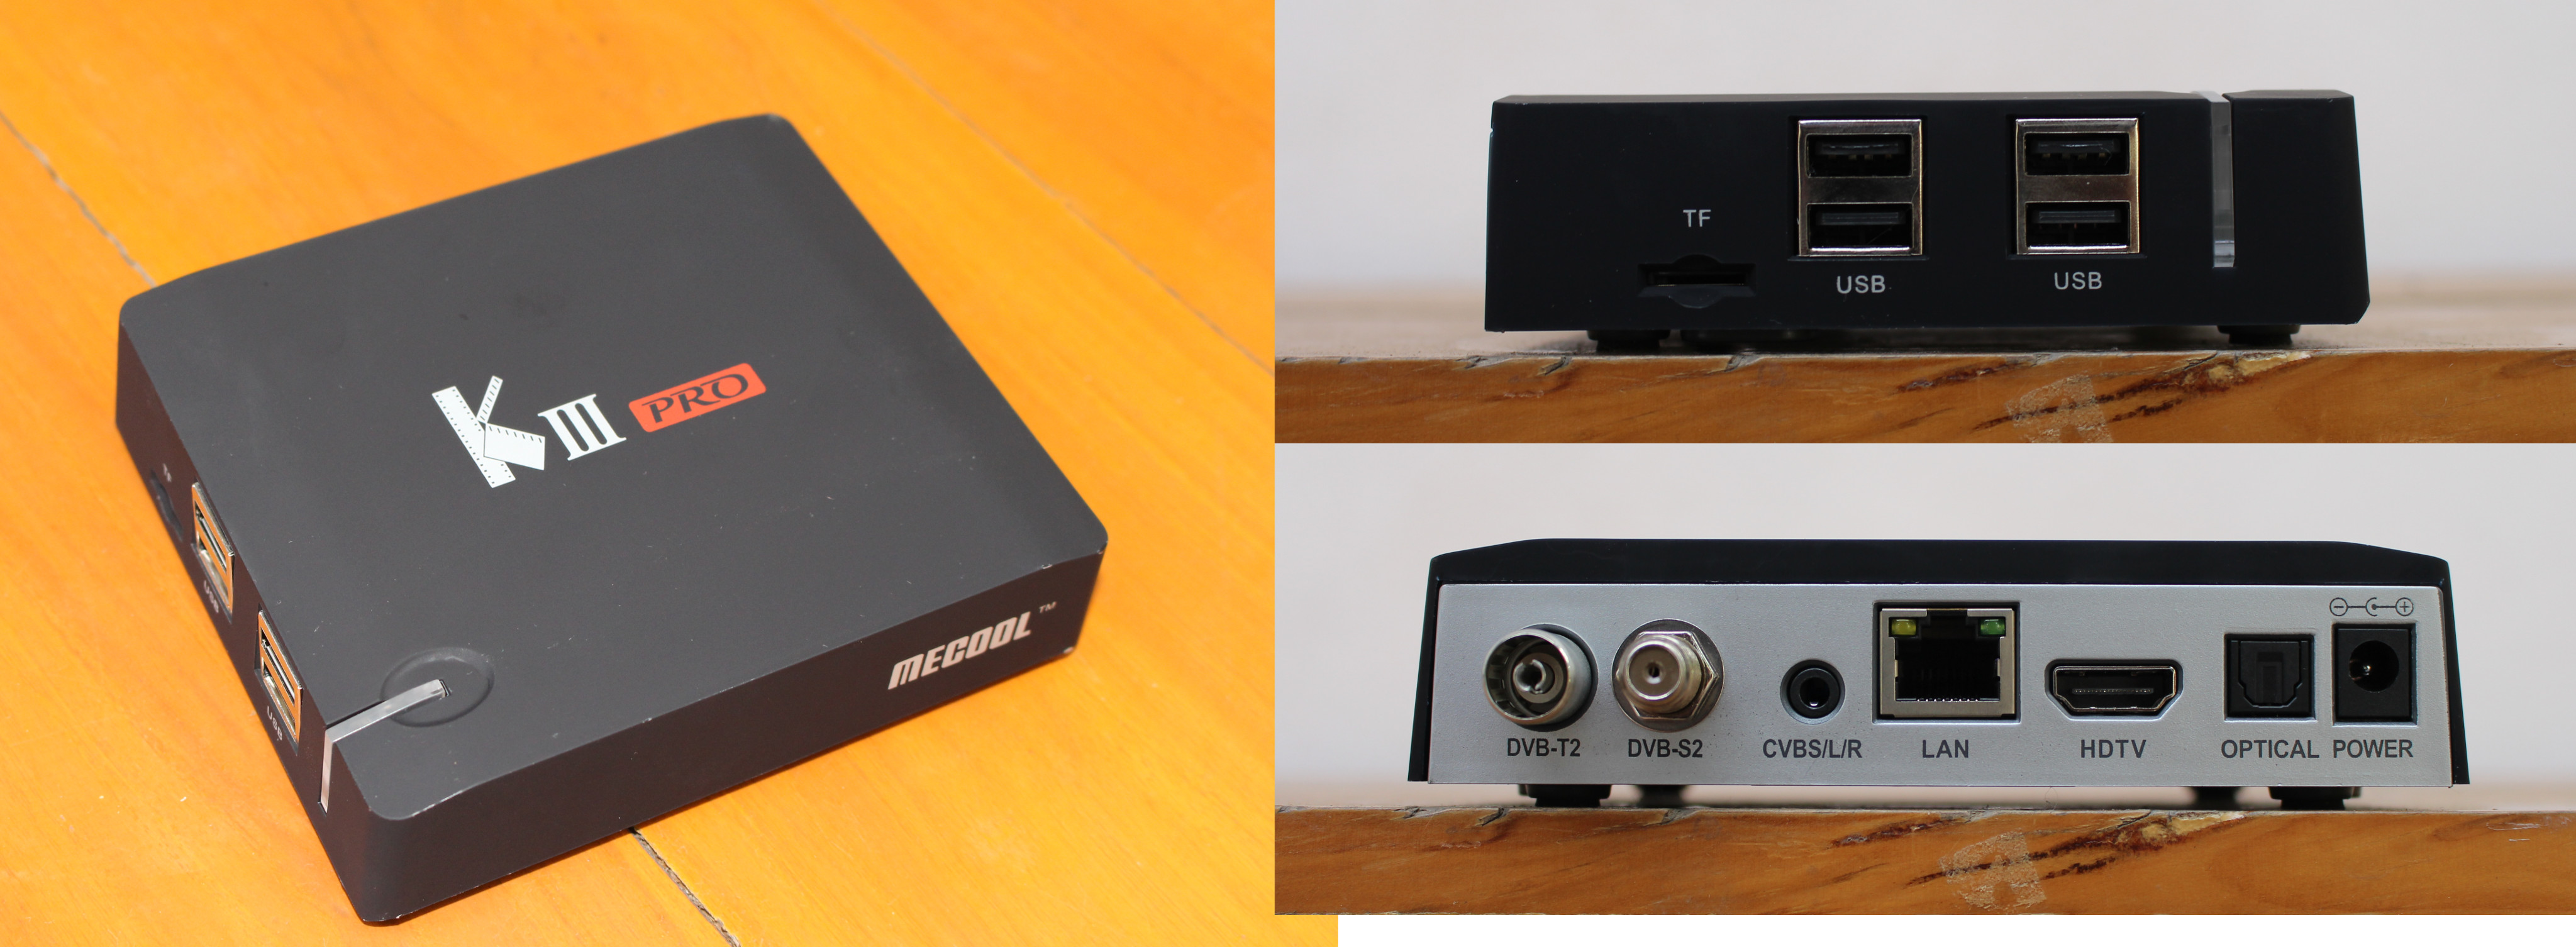 Mecool KIII Pro Hybrid Android STB Review - Part 1: Specs, Unboxing